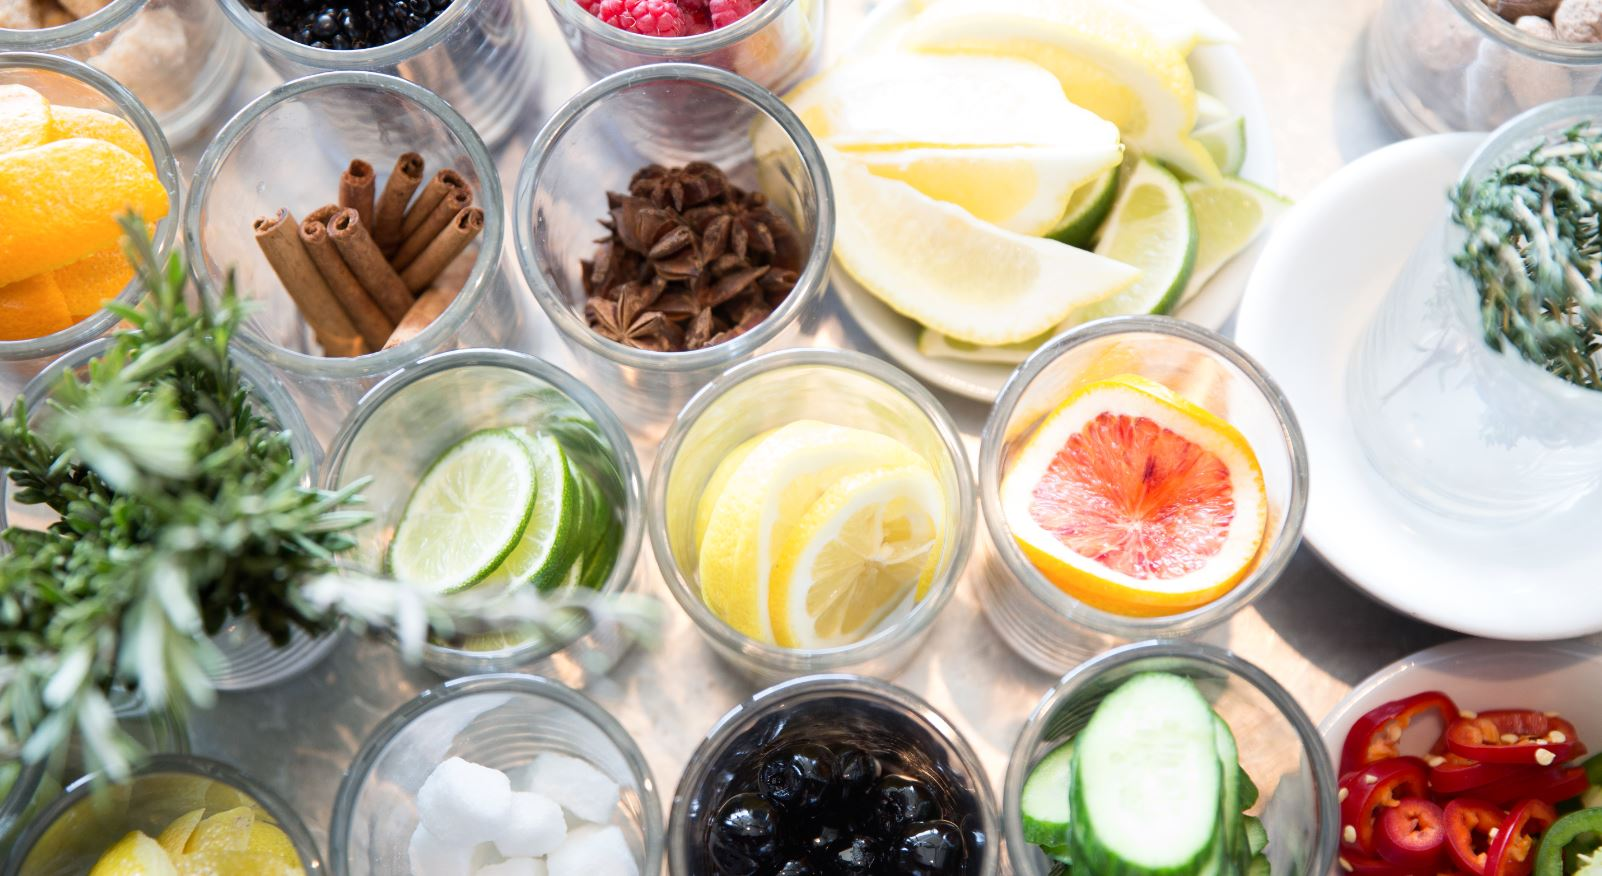 An array of fresh bar condiments with citrus slices, herbs, olives, peppers and spices.